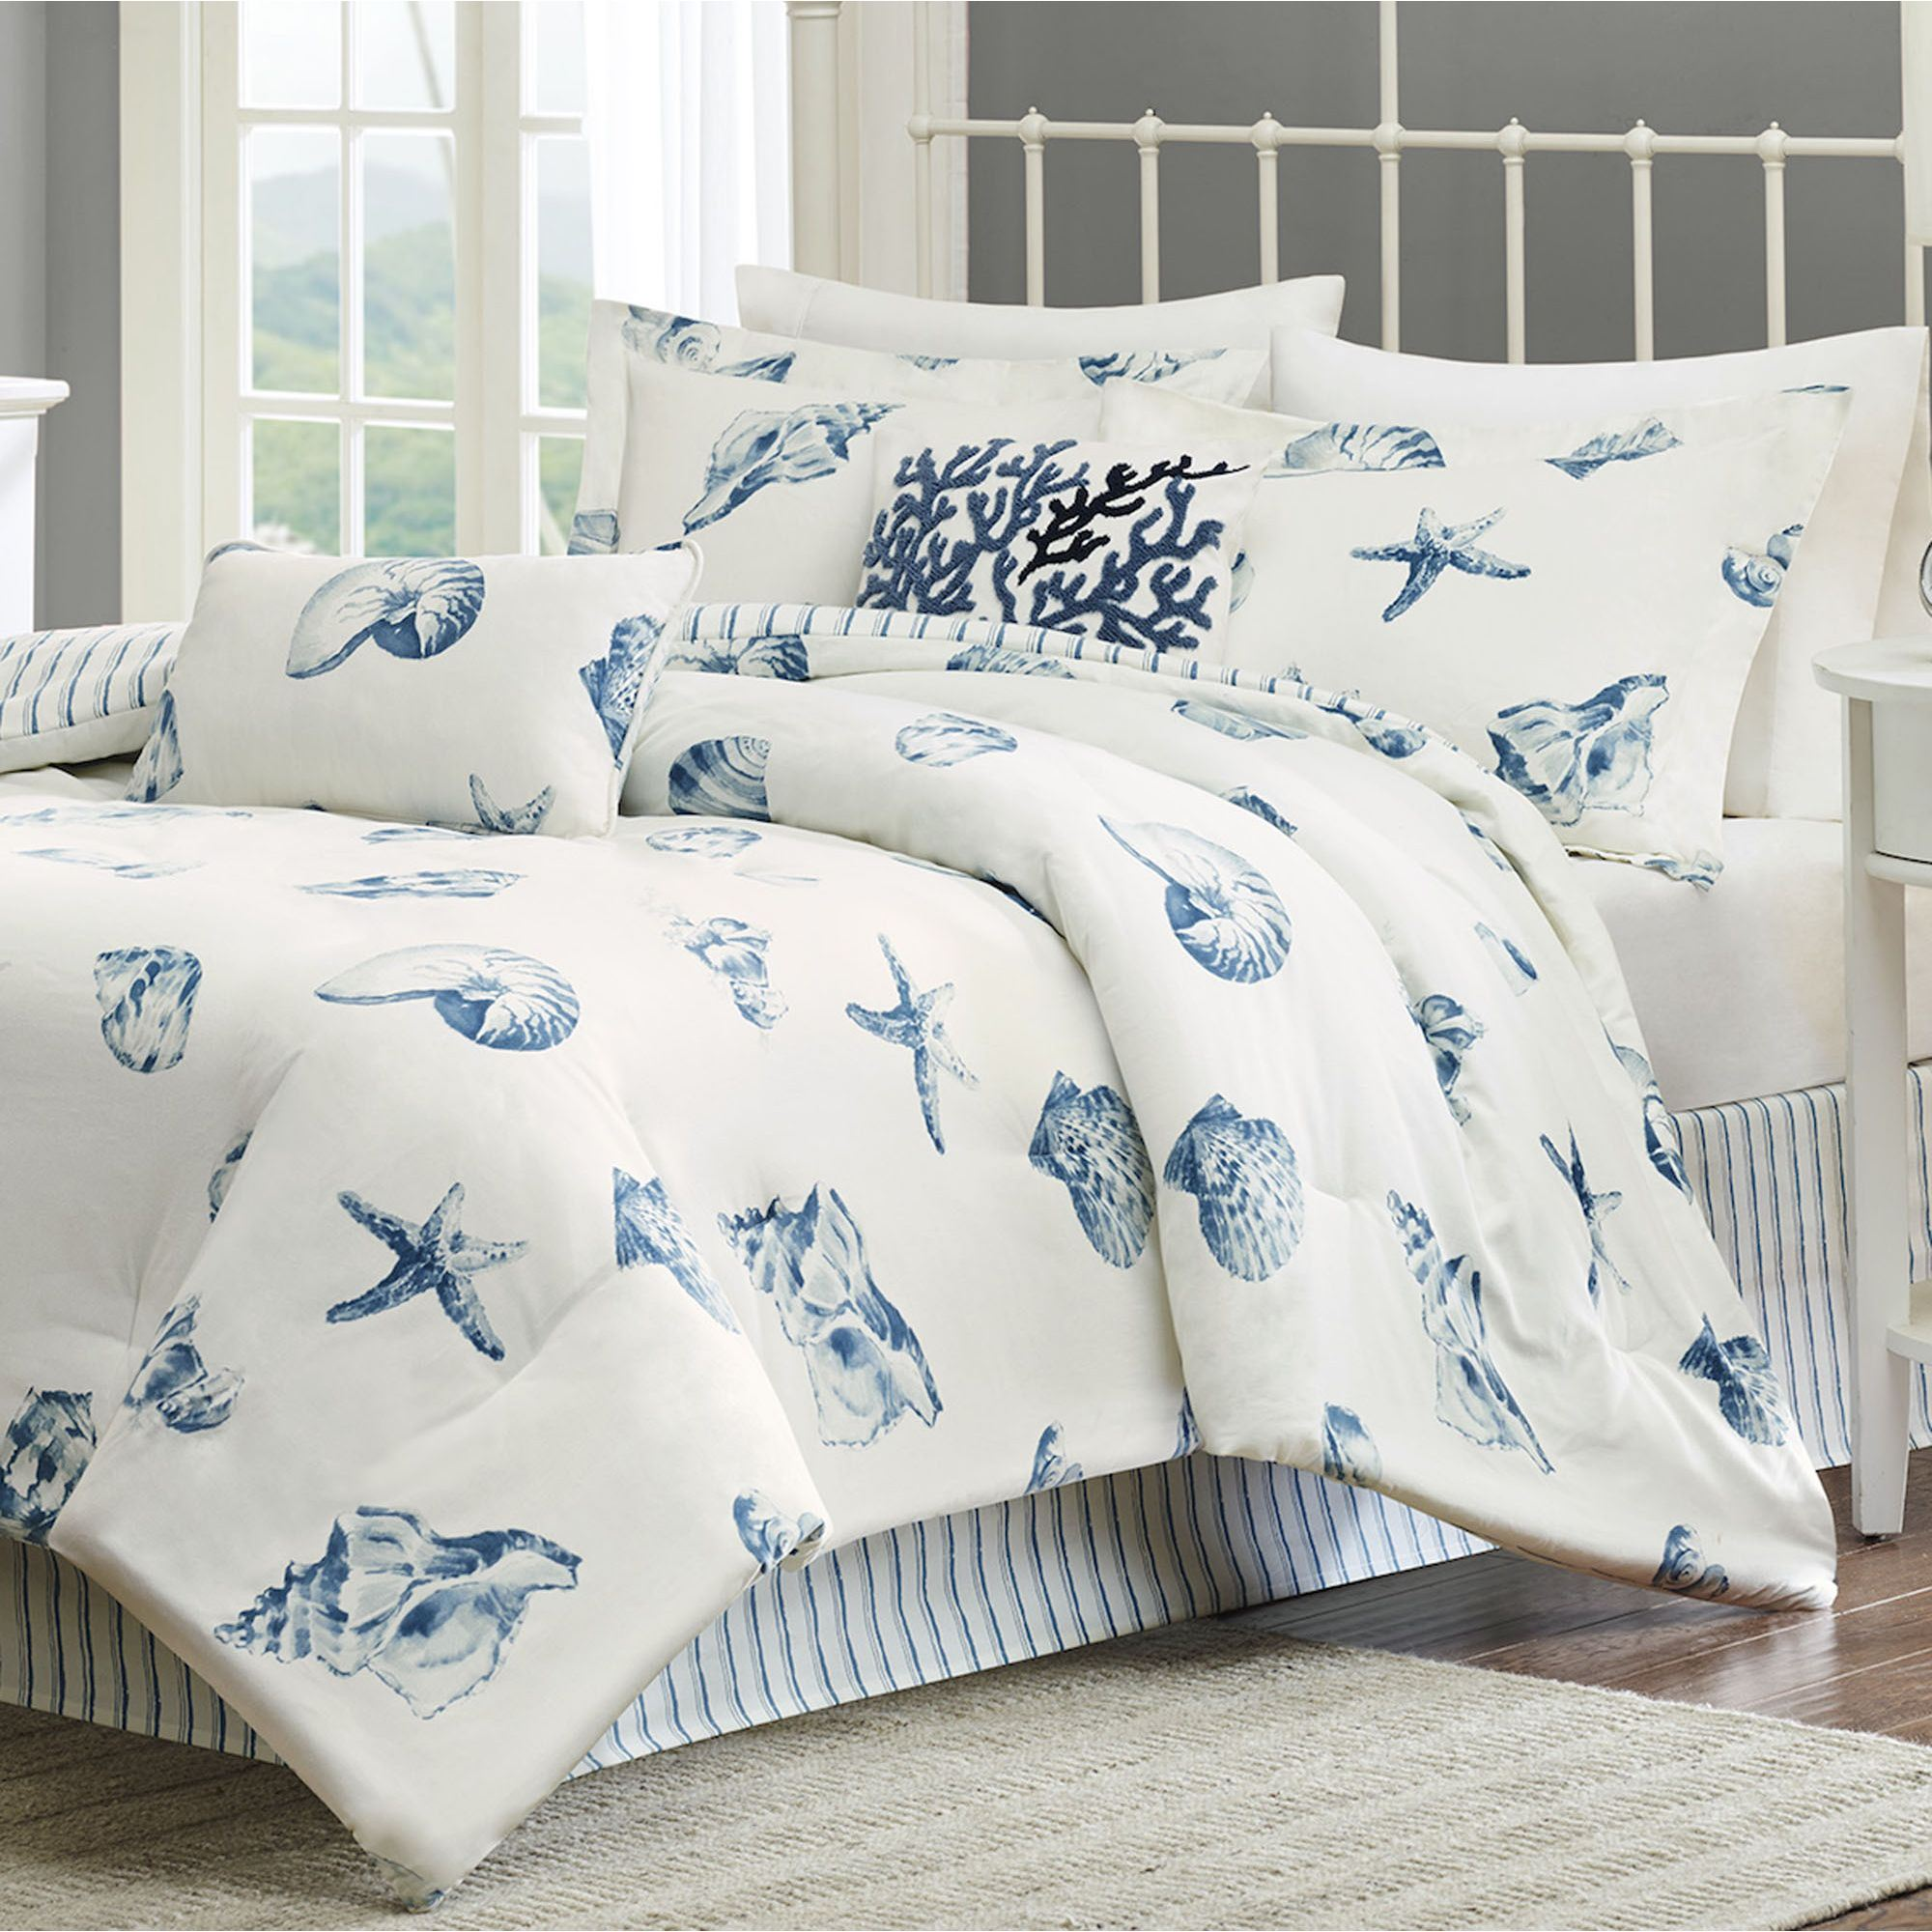 Beach House Seashell Coastal Comforter Bedding